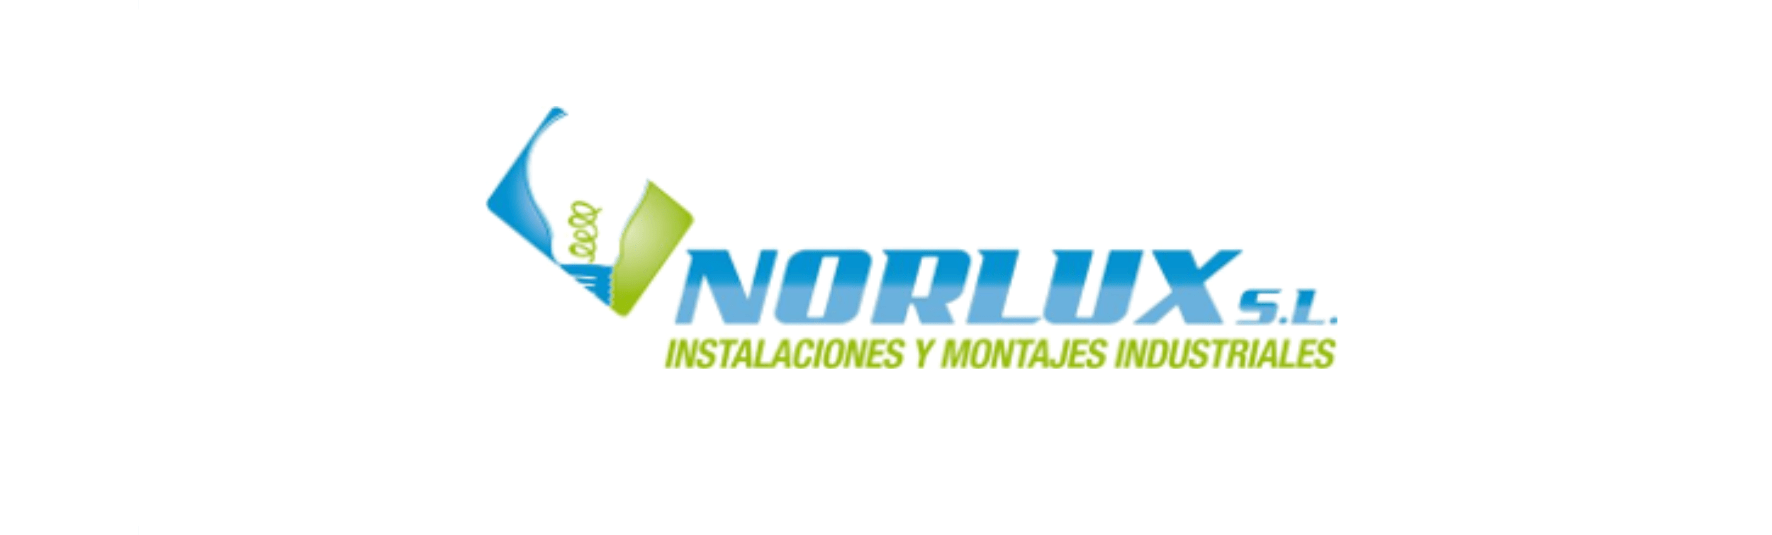 Norlux